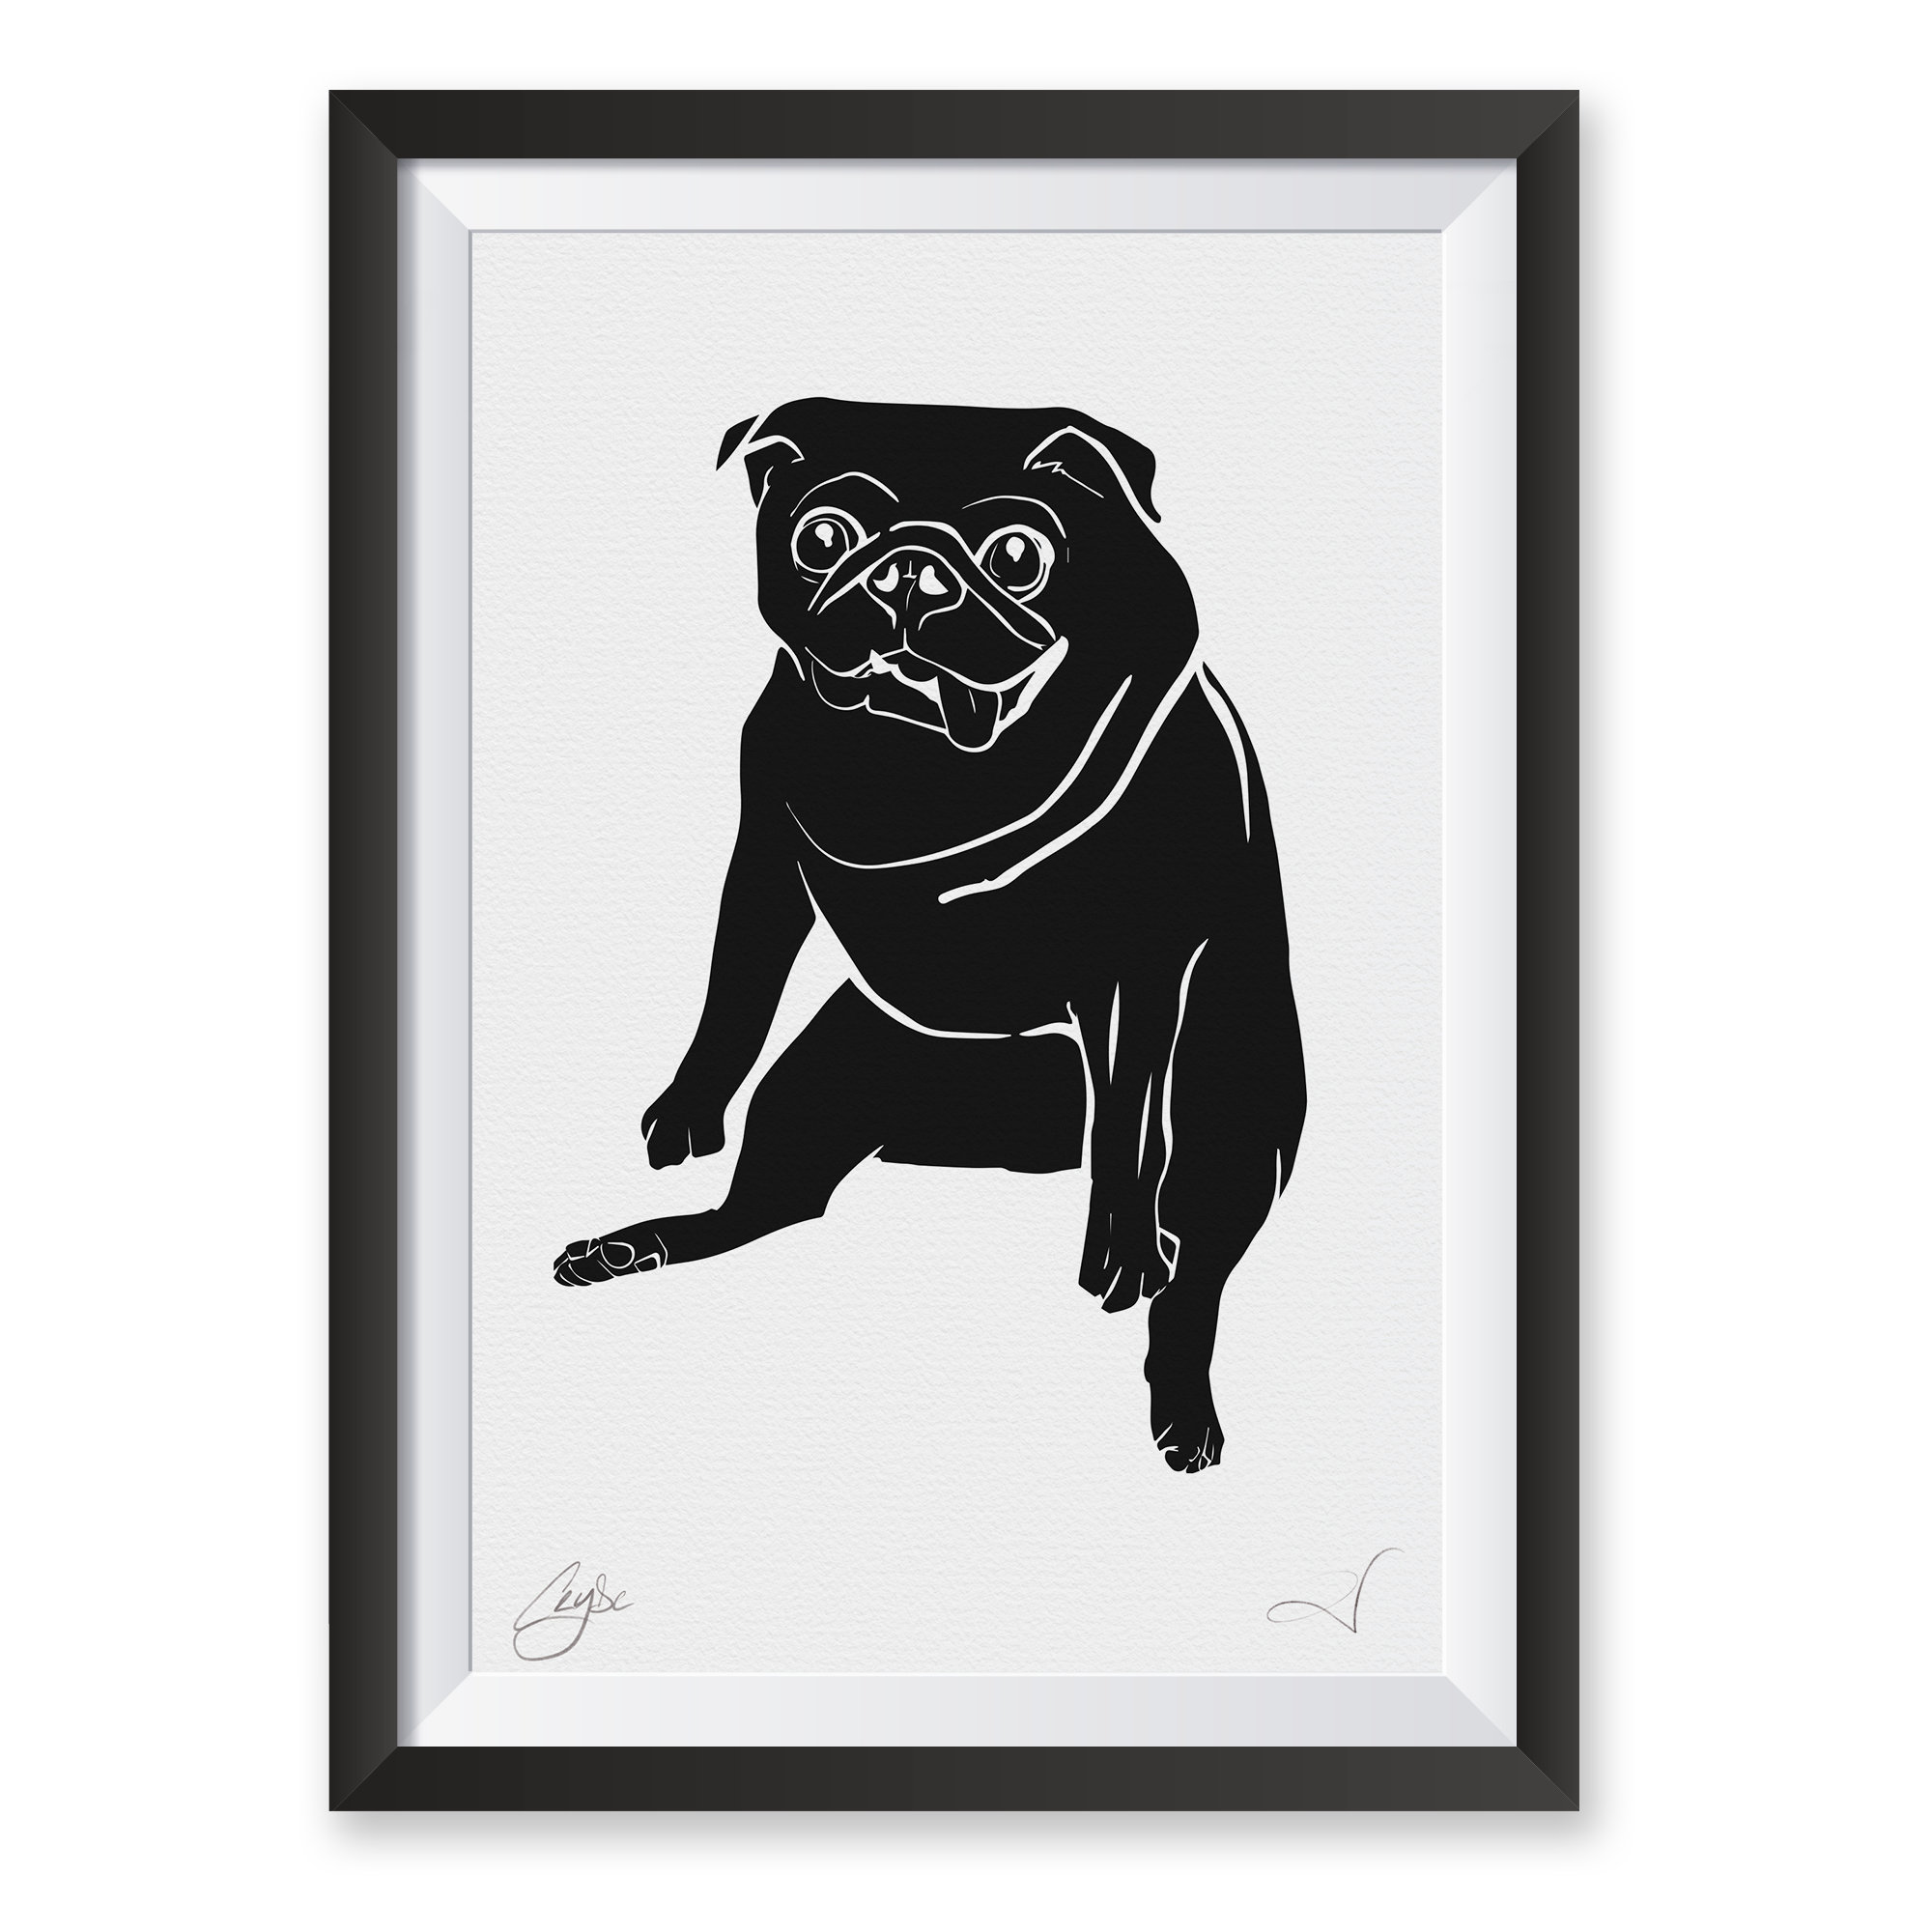 FRAMED_CLYDE_PRINT__0000_BLACK.png